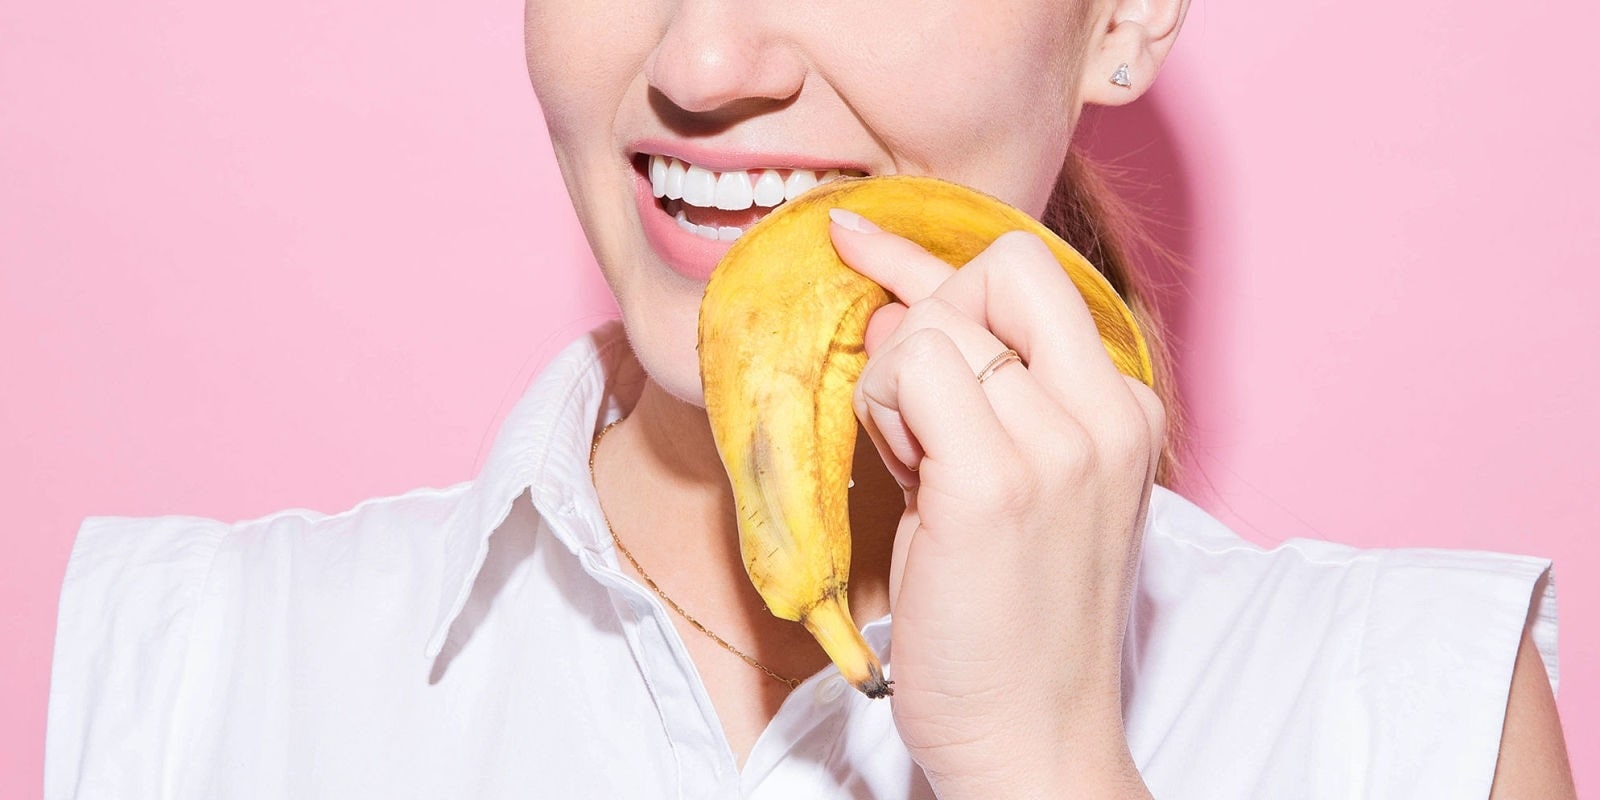 woman using the inside of banana skin on her teeth for teeth whitening purposes.